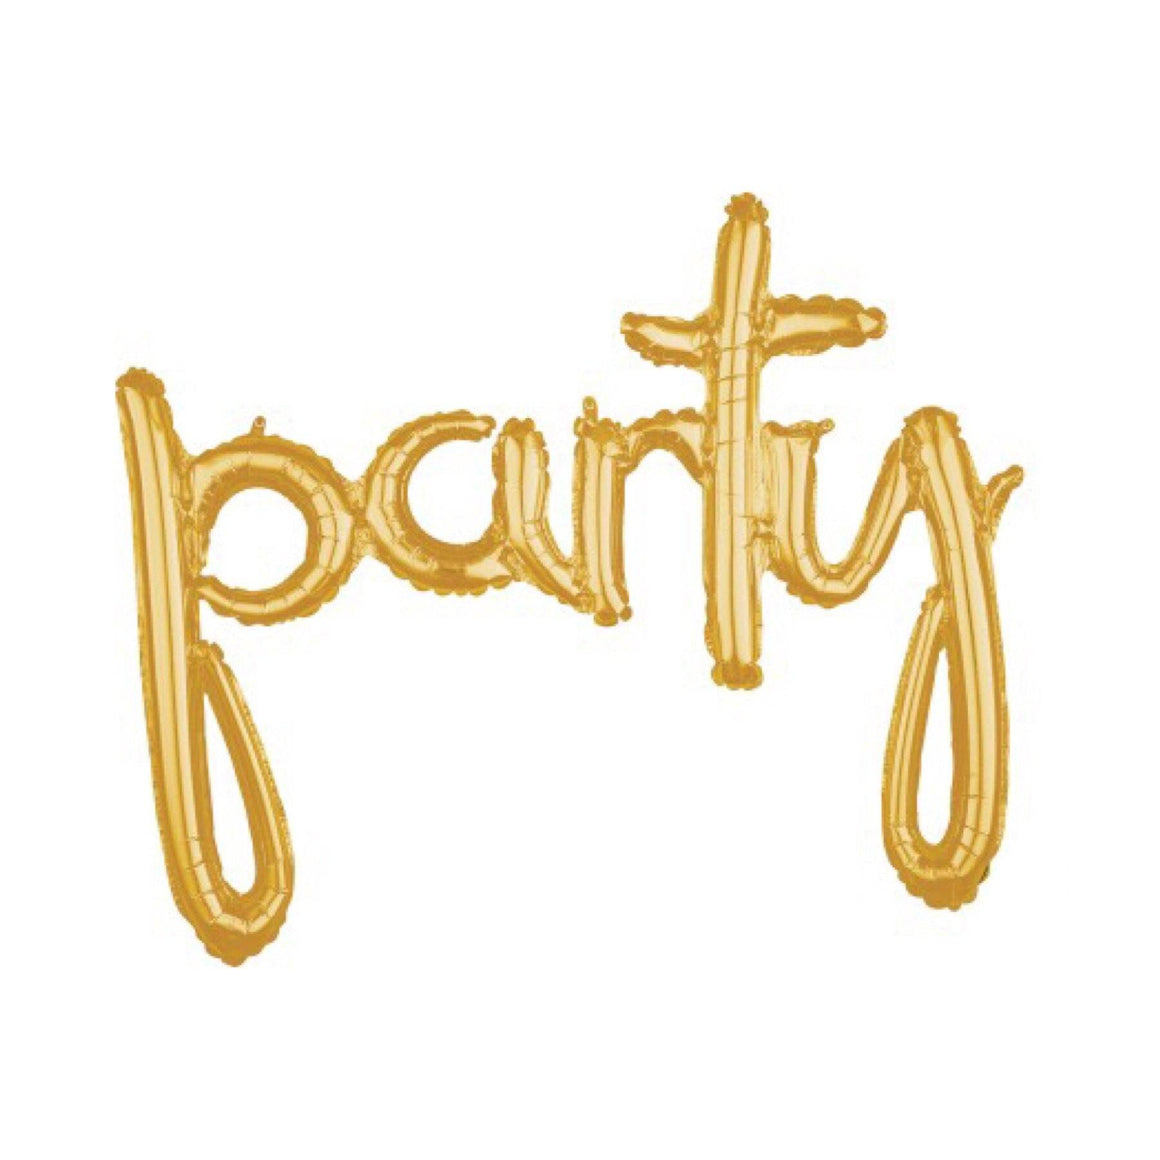 BALLOONS - SCRIPT GOLD PARTY, Balloons, Anagram - Bon + Co. Party Studio